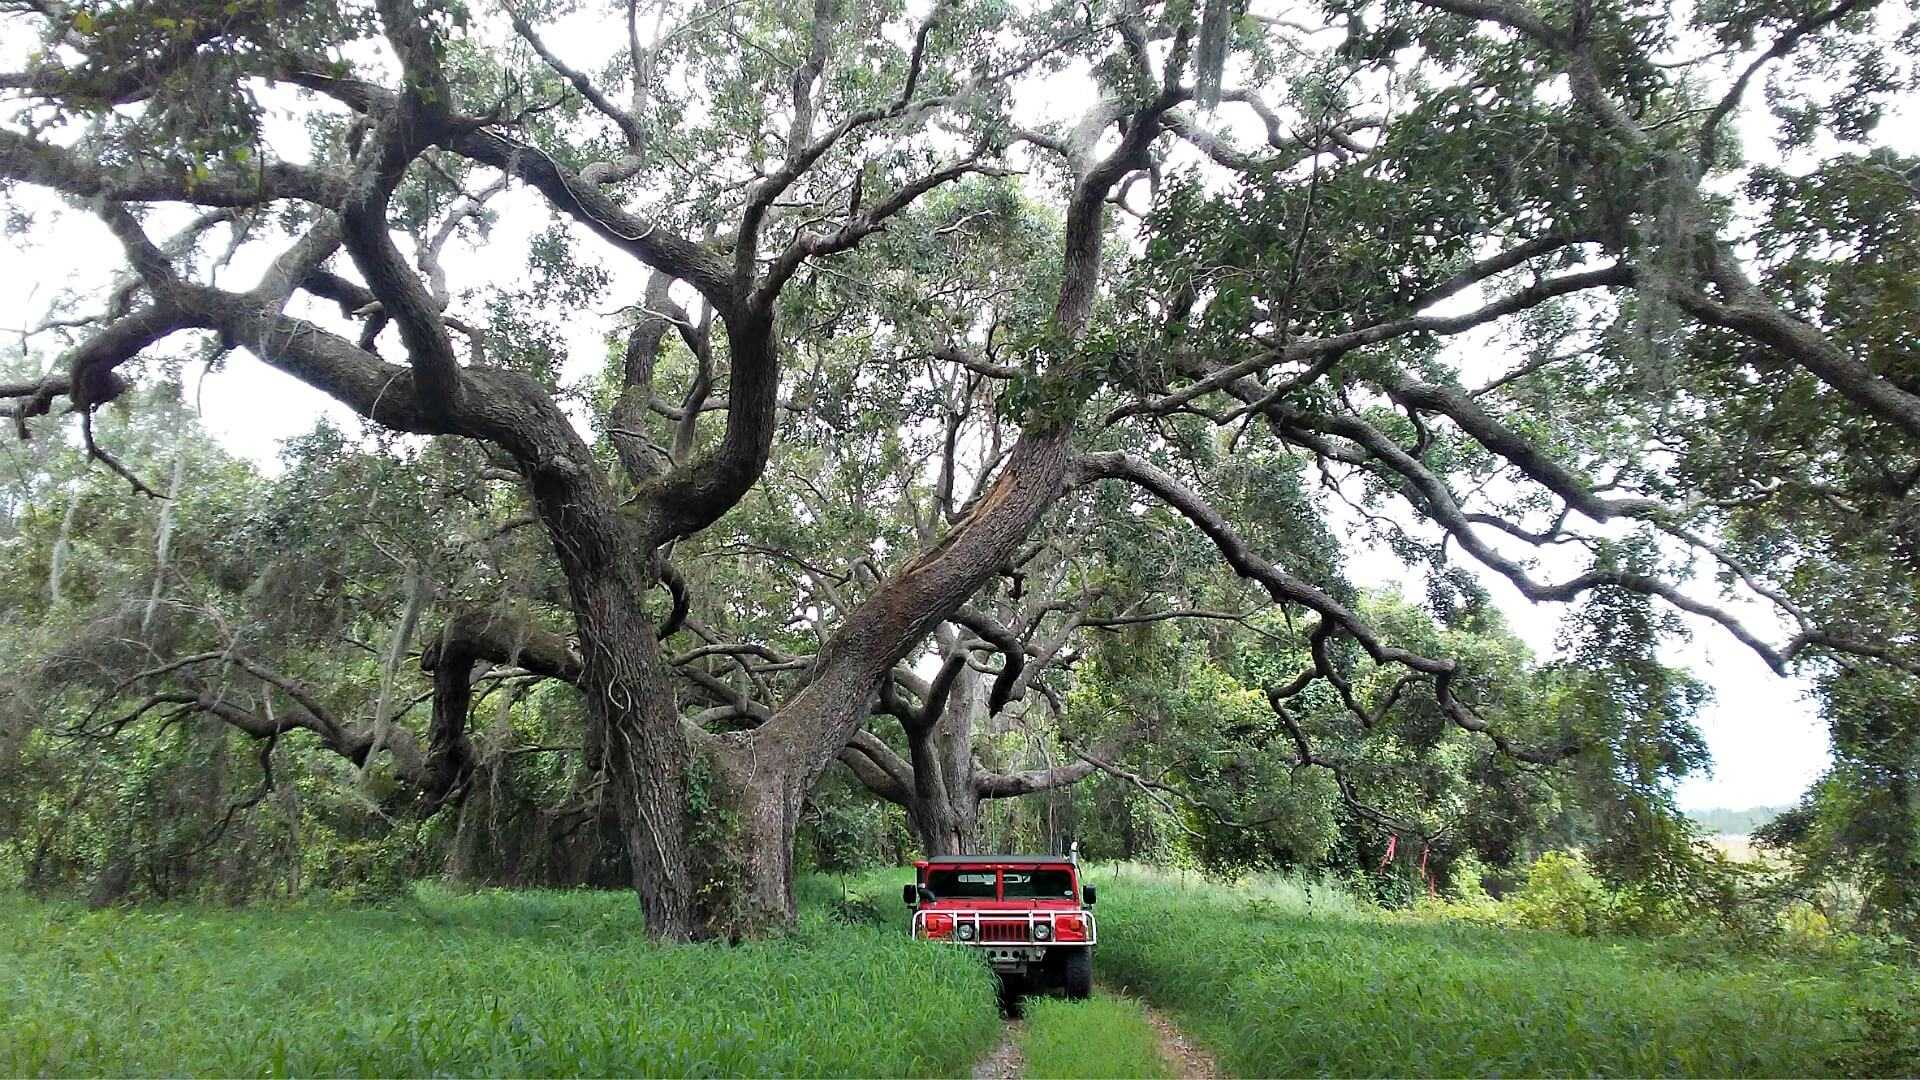 as-citrus-struggles-some-olive-growers-take-root-in-florida